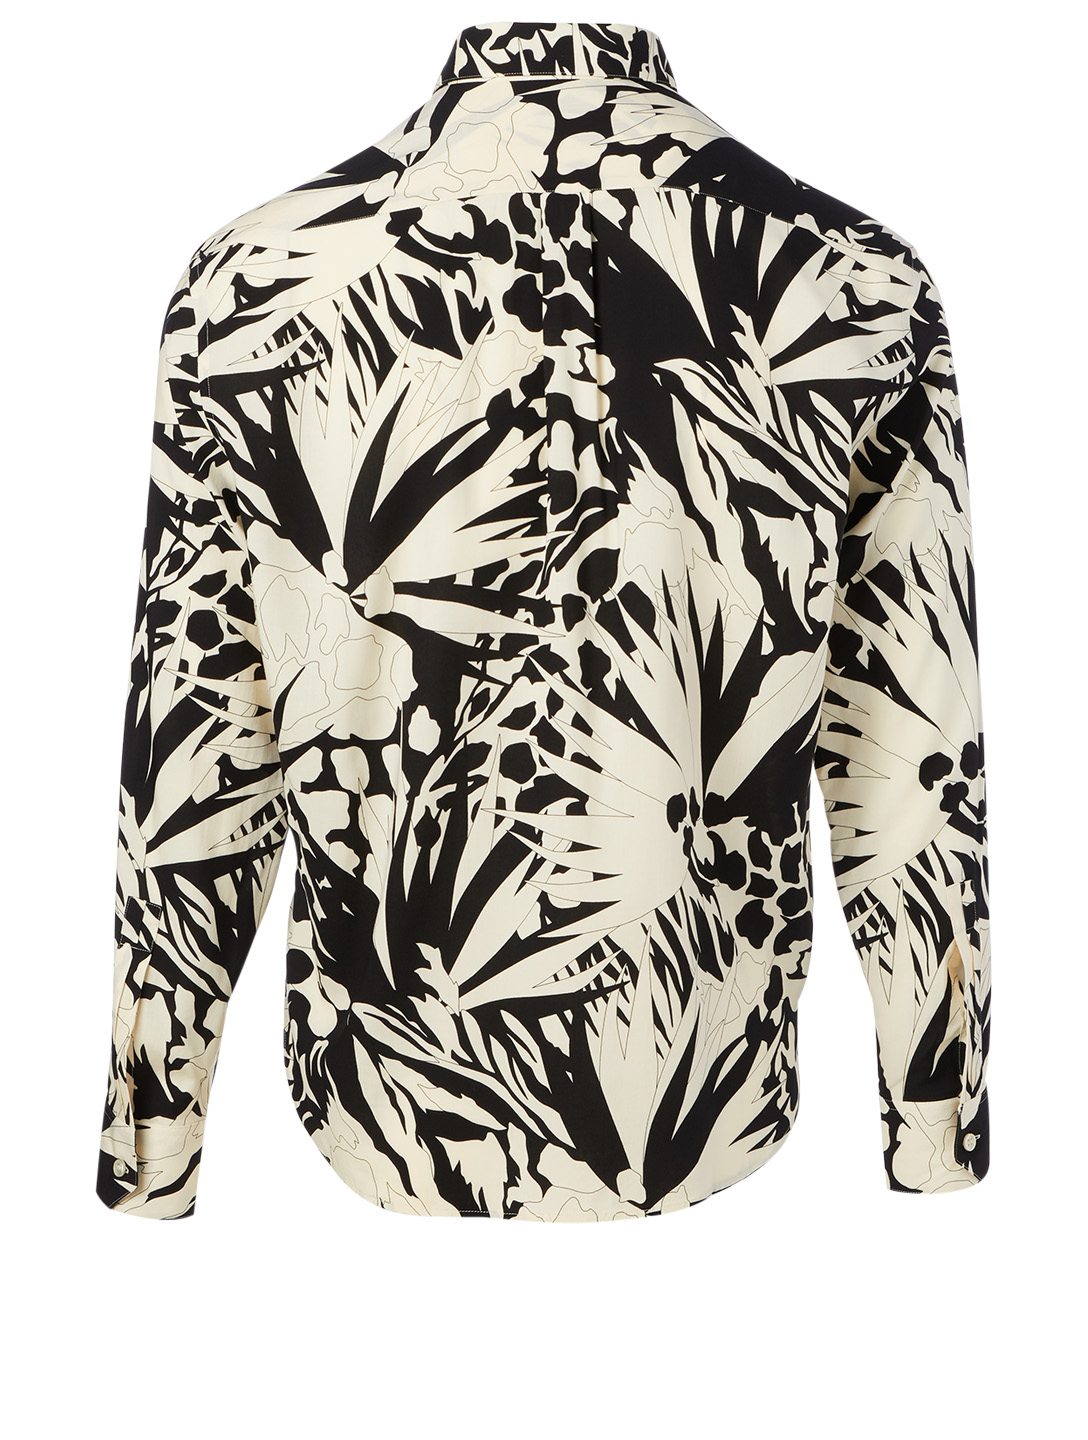 SAINT LAURENT Long-Sleeve Shirt In Jungle Print Men's Black